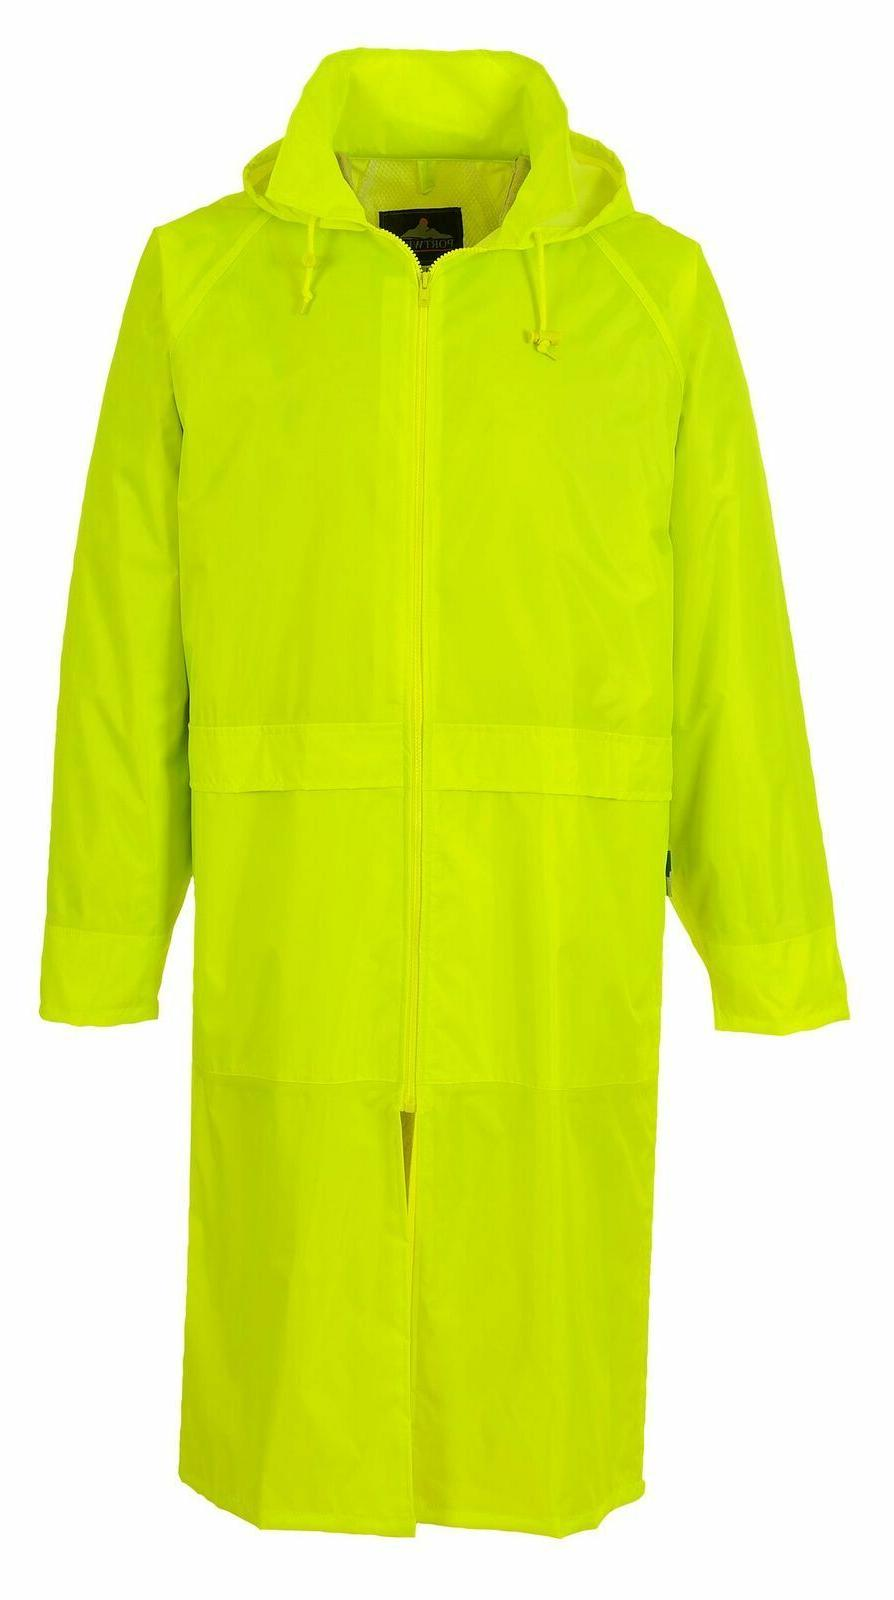 Portwest Rain Coat Waterproof Away S438